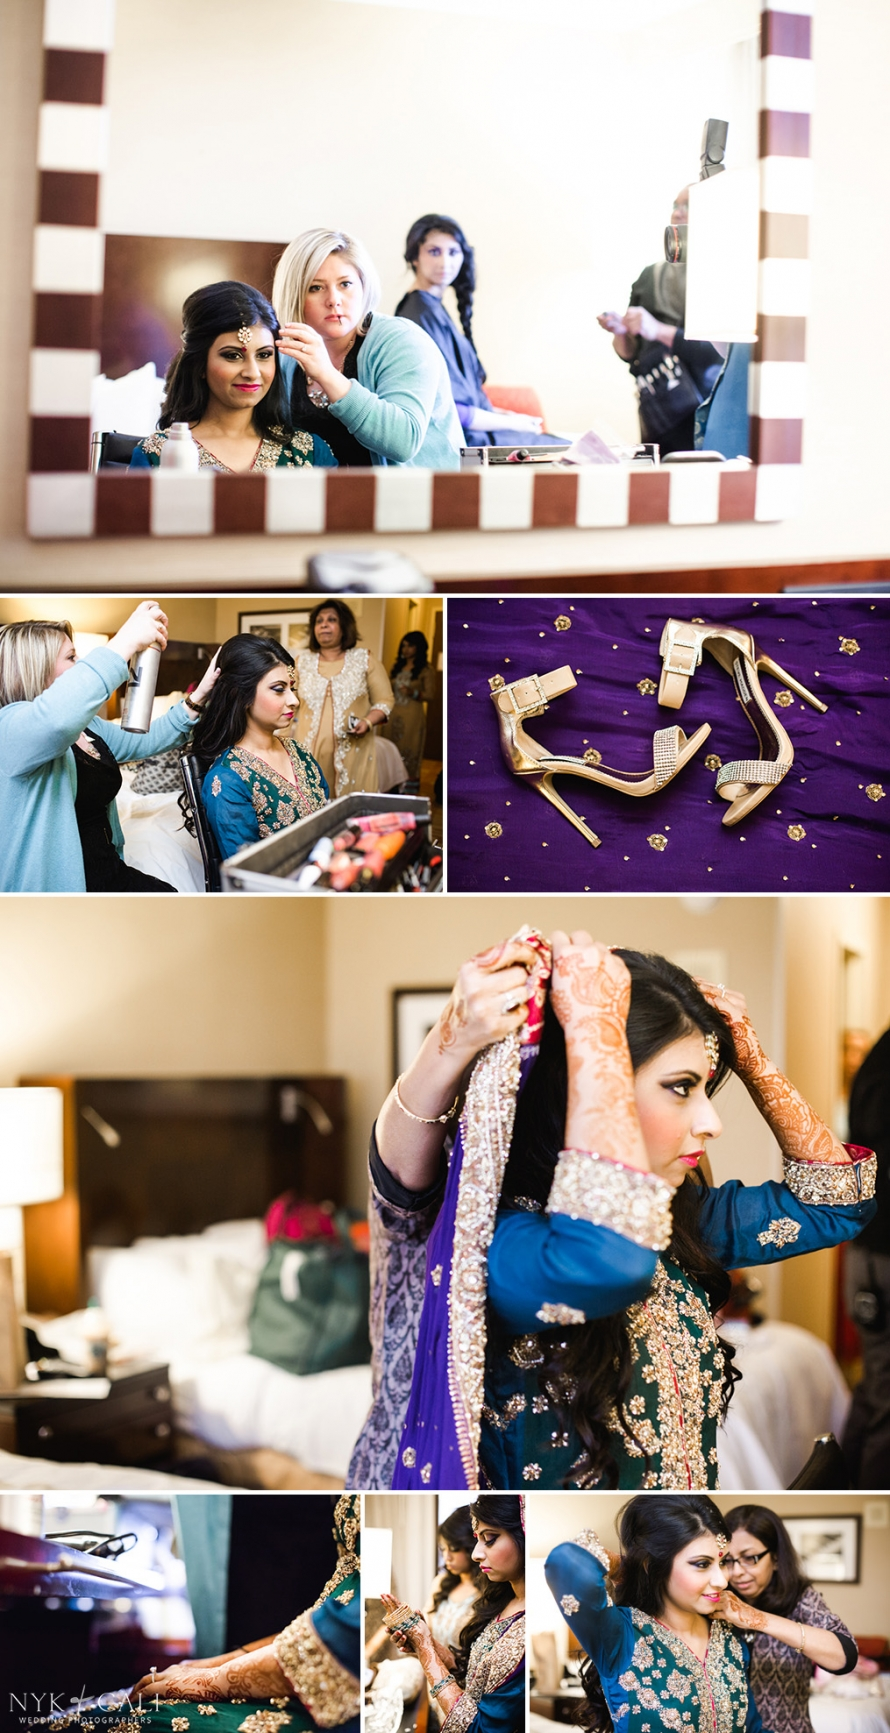 Shams-Ayesha-Wedding-Nyk-Cali-Pakistani-Nashville-01